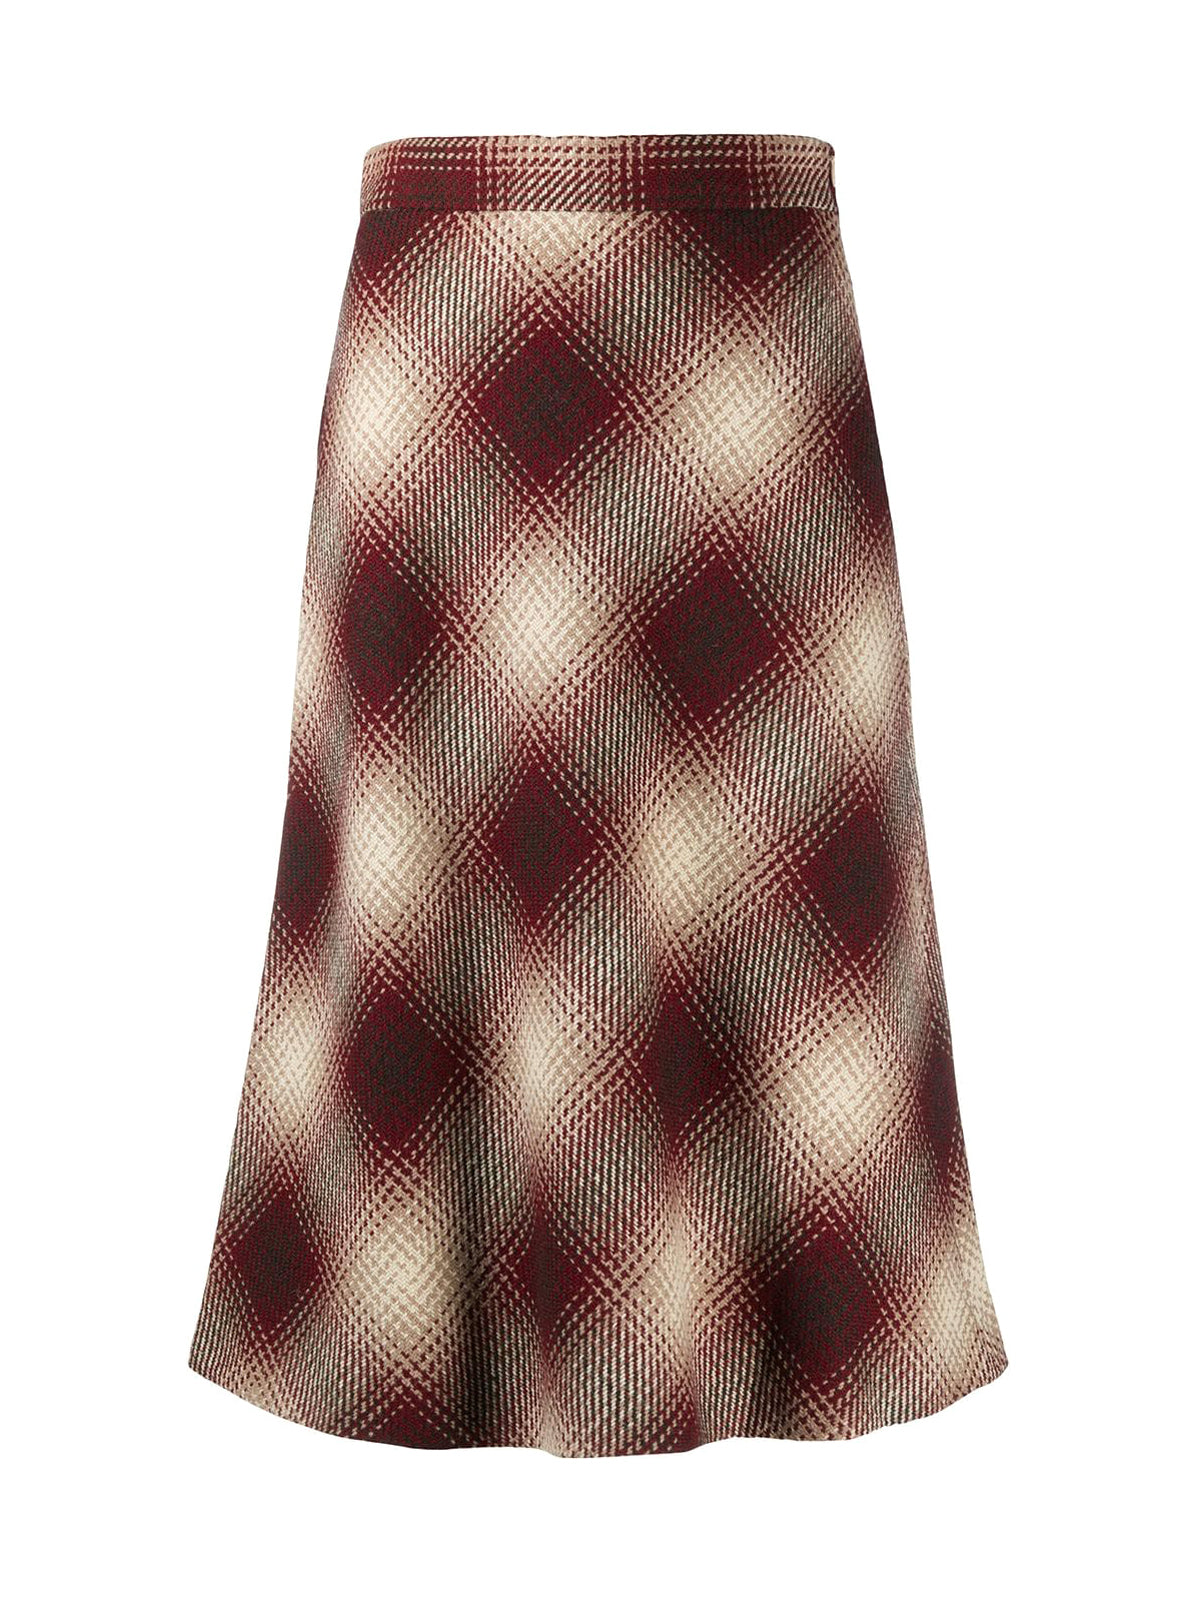 Flared skirt in squares